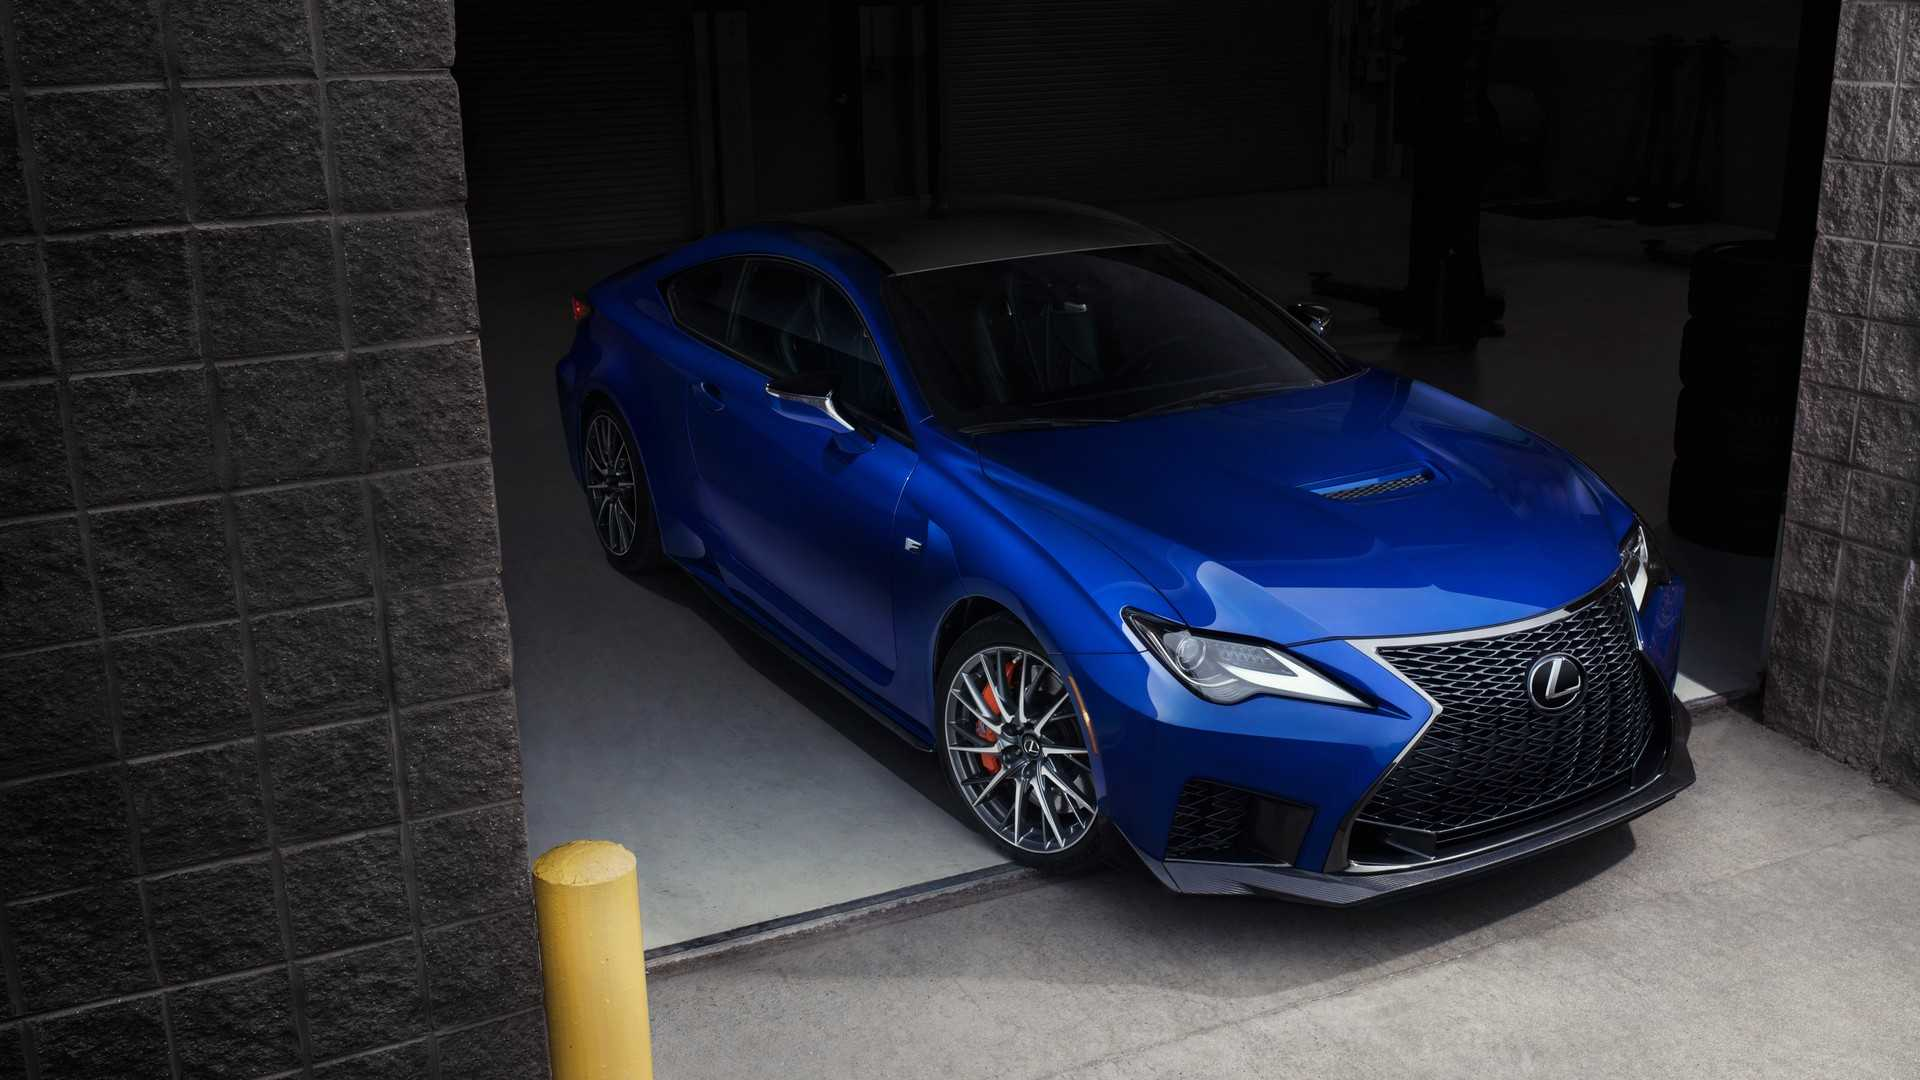 50 Great Lexus Usa 2020 Research New for Lexus Usa 2020